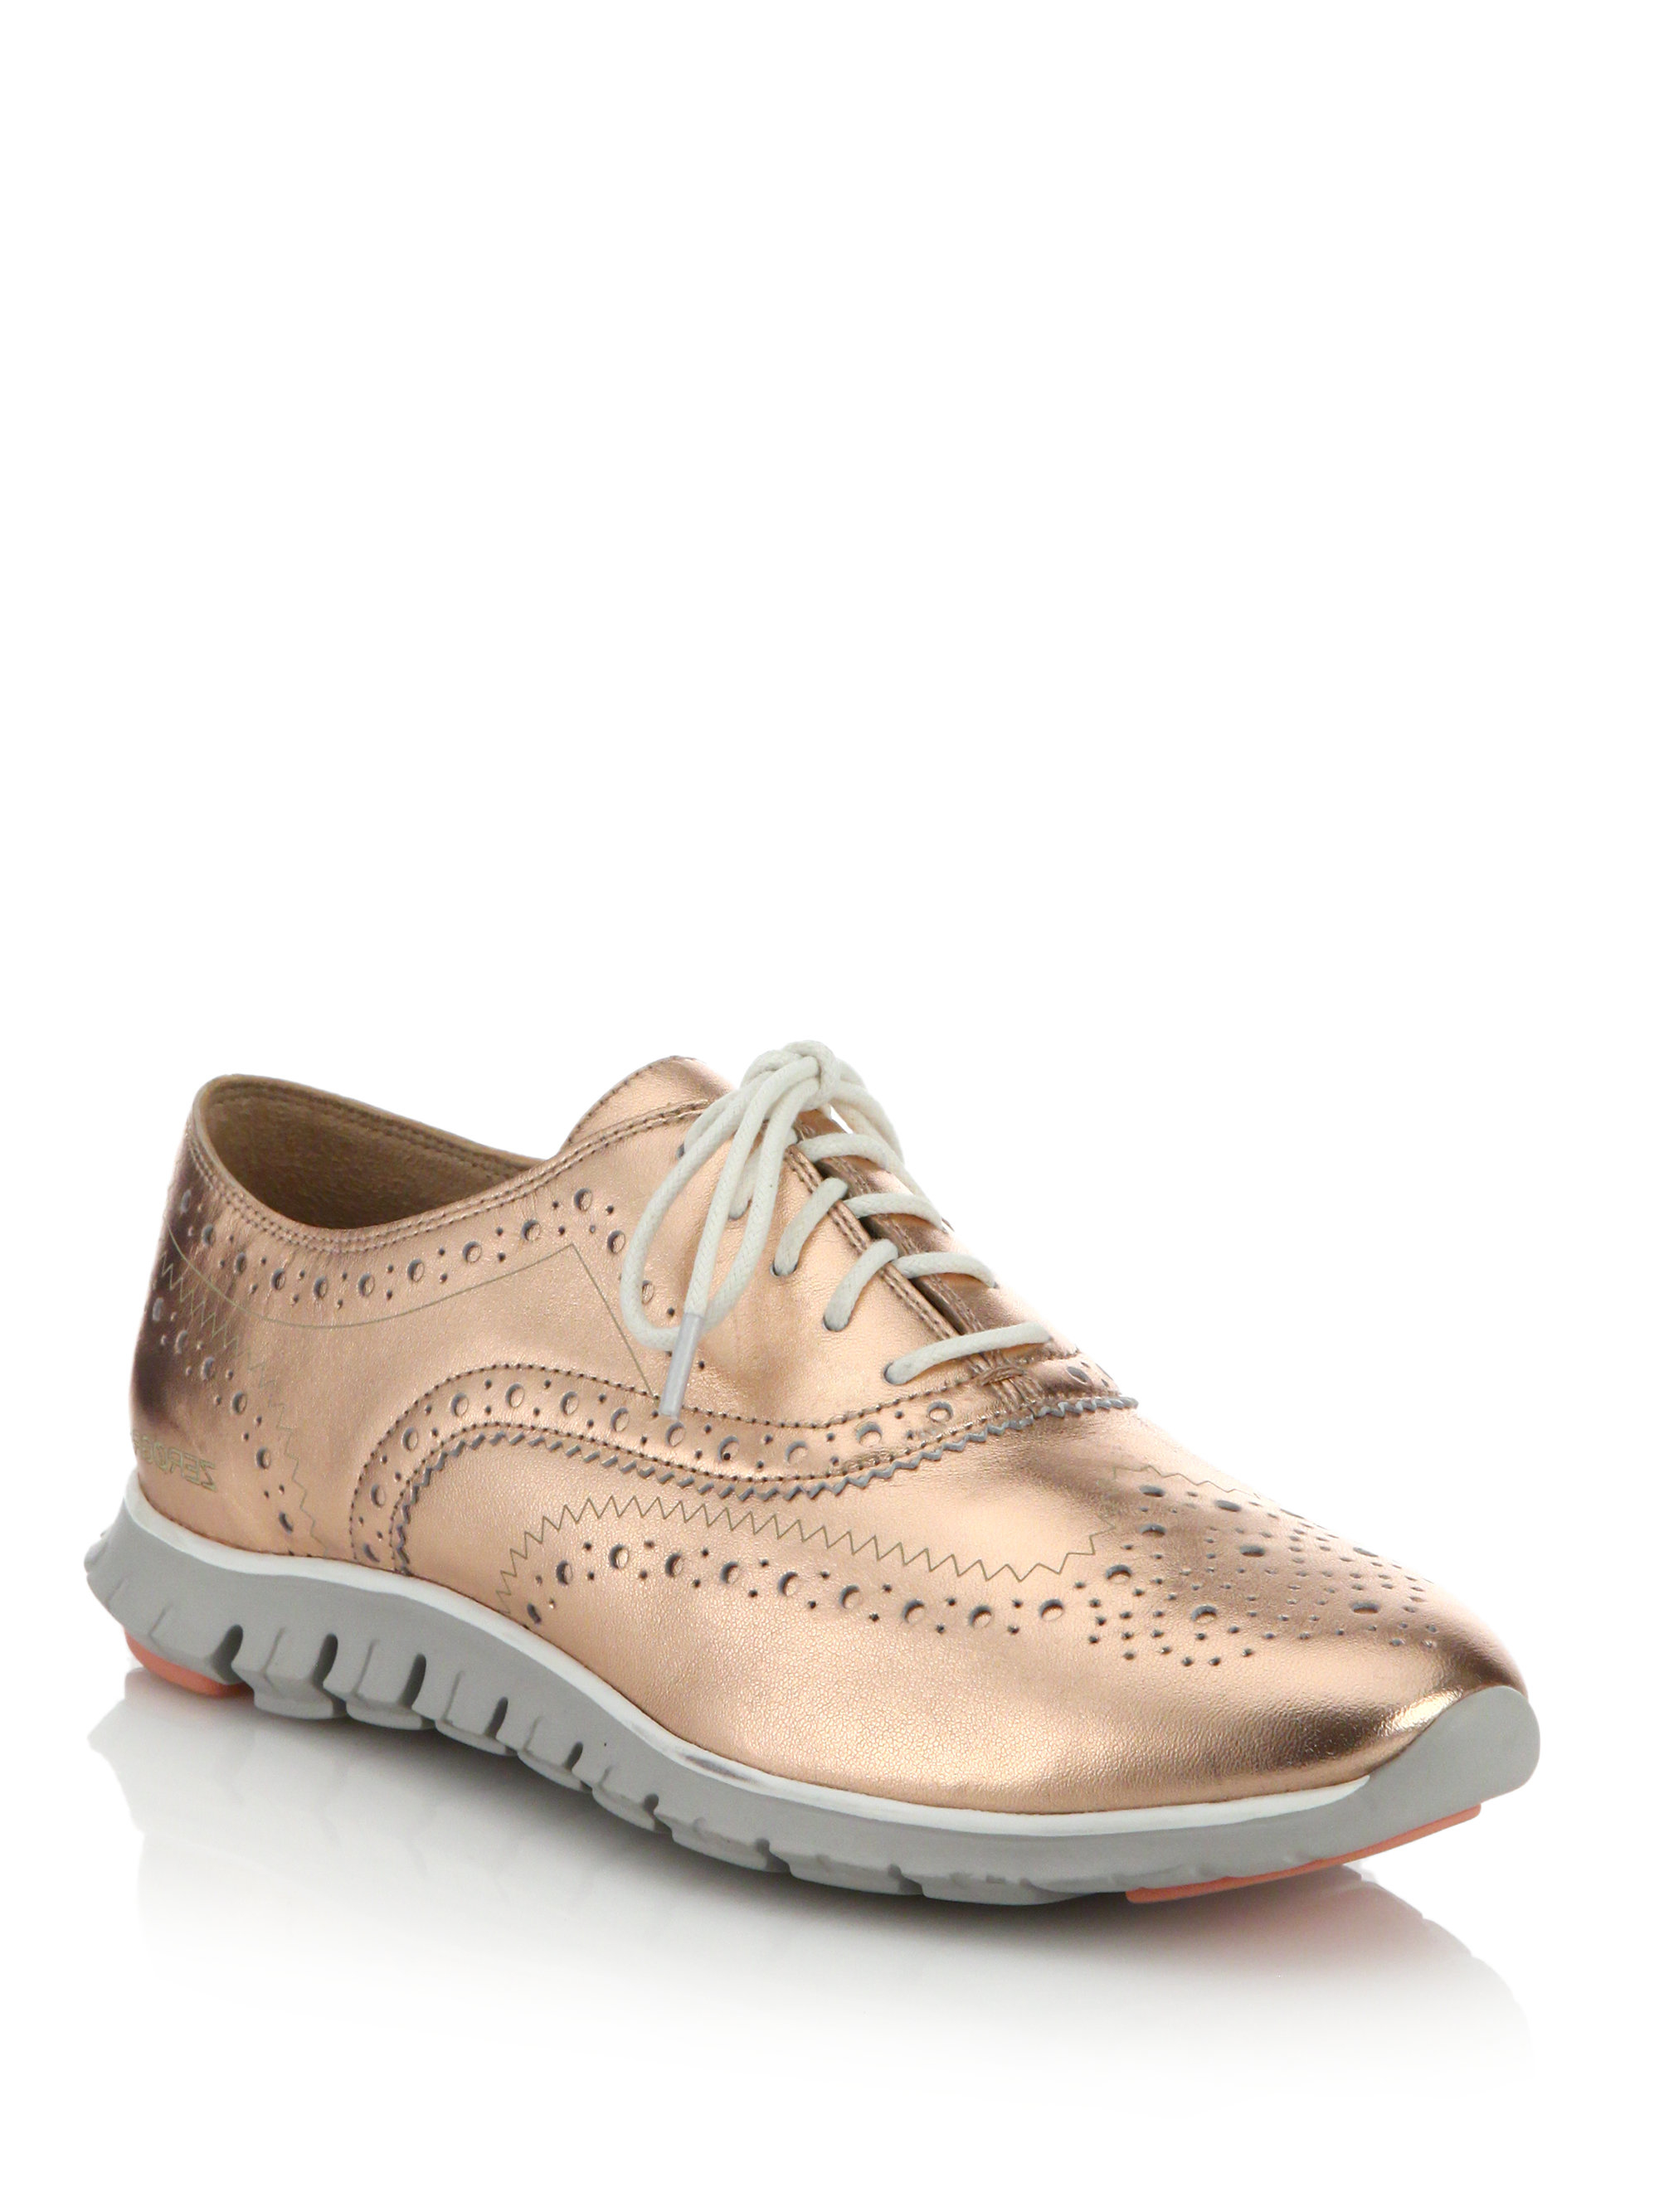 50 Off Cole Haan Womens Zerogrand Wingtip Oxford Ii Sneaker Shoes